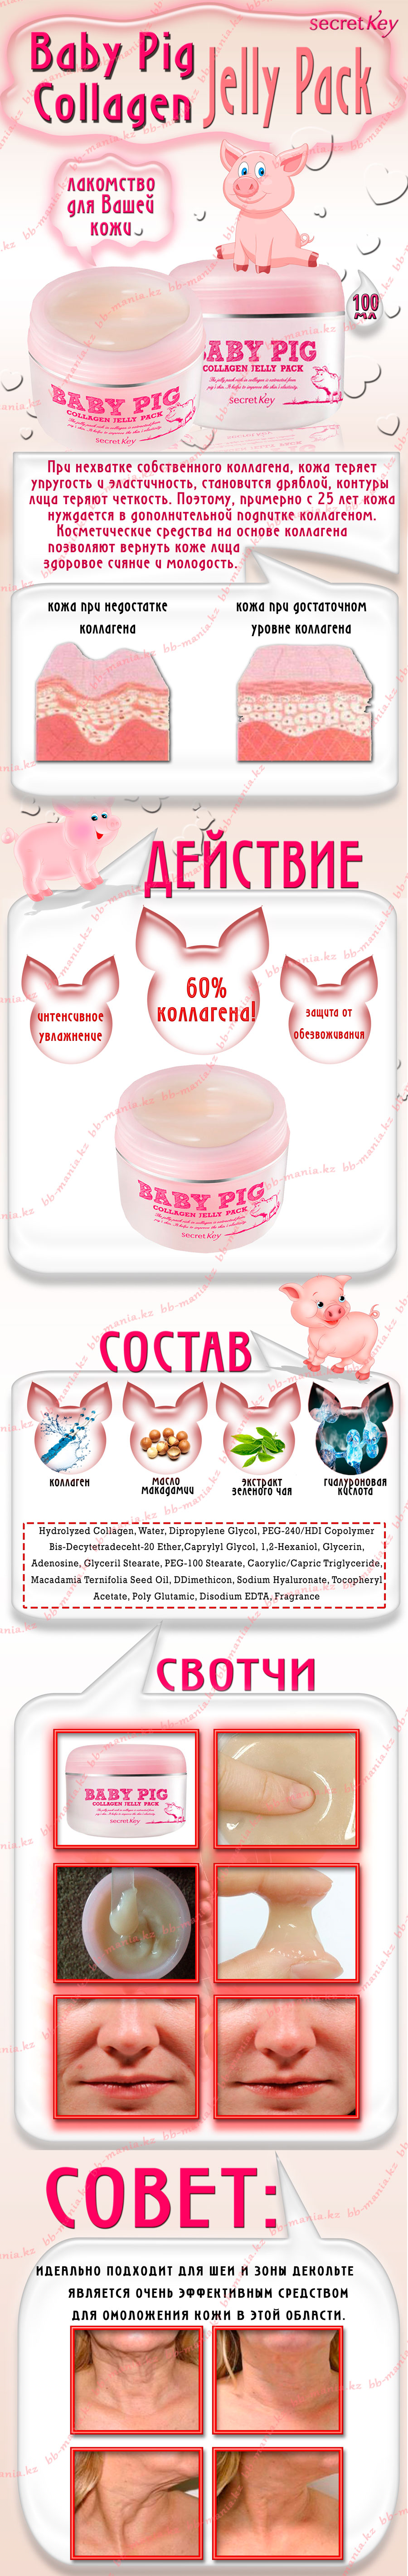 Baby-Pig-Jelly-Pack (3)